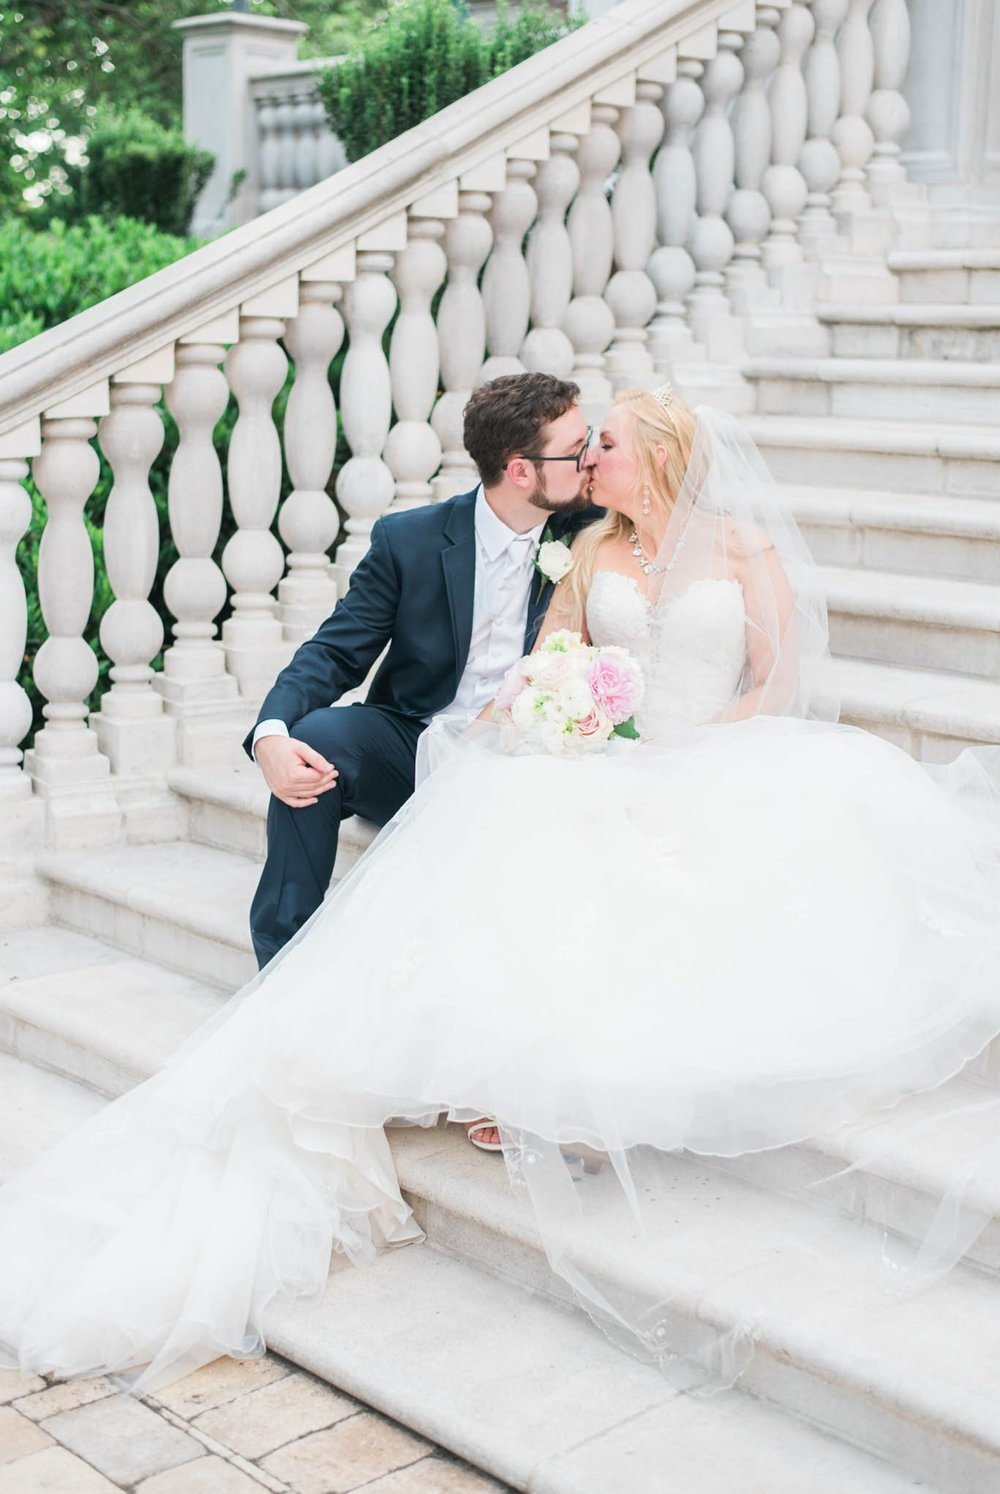 bedfordcolumns_entwinedevents_Lynchburgweddingphotographer_virginiaweddingphotographer_tarahlaunce 11.jpg